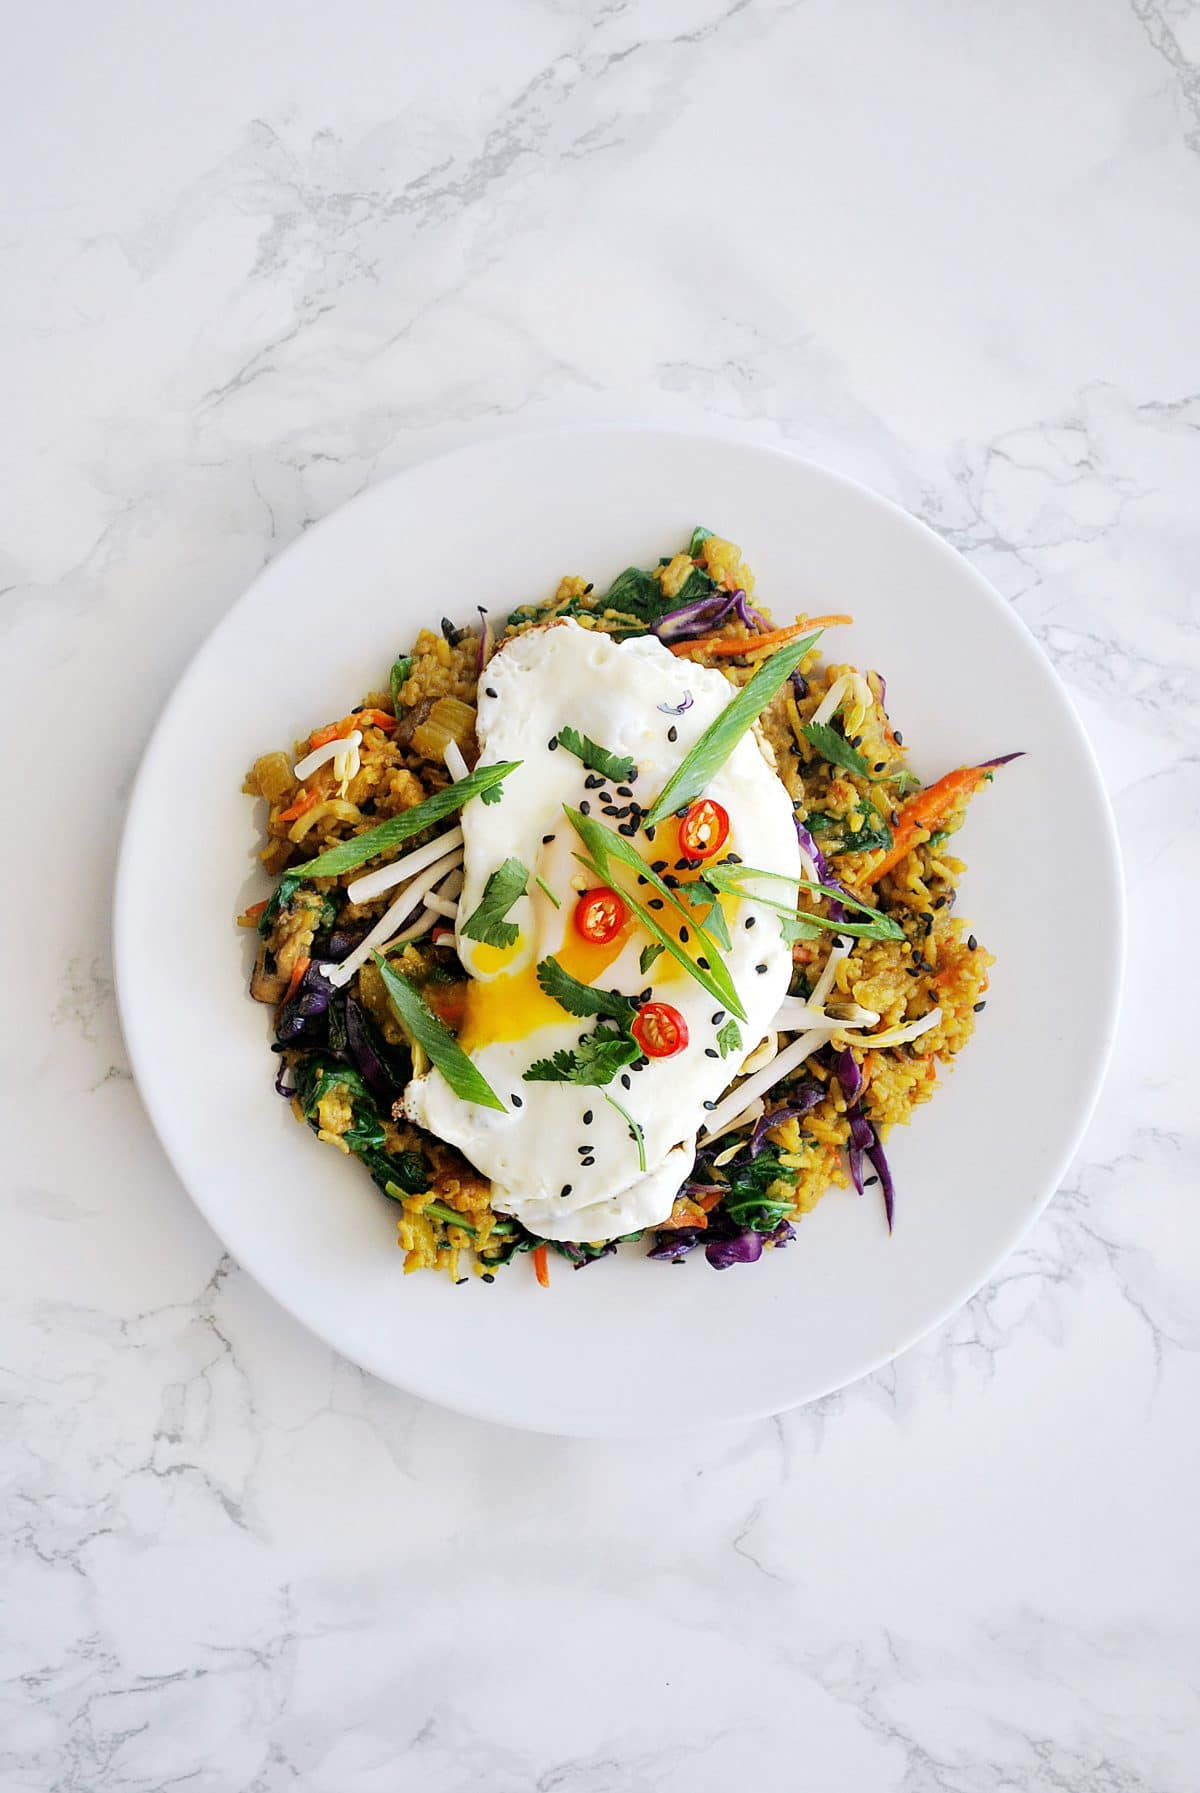 A top down view of a plate of nasi goreng.